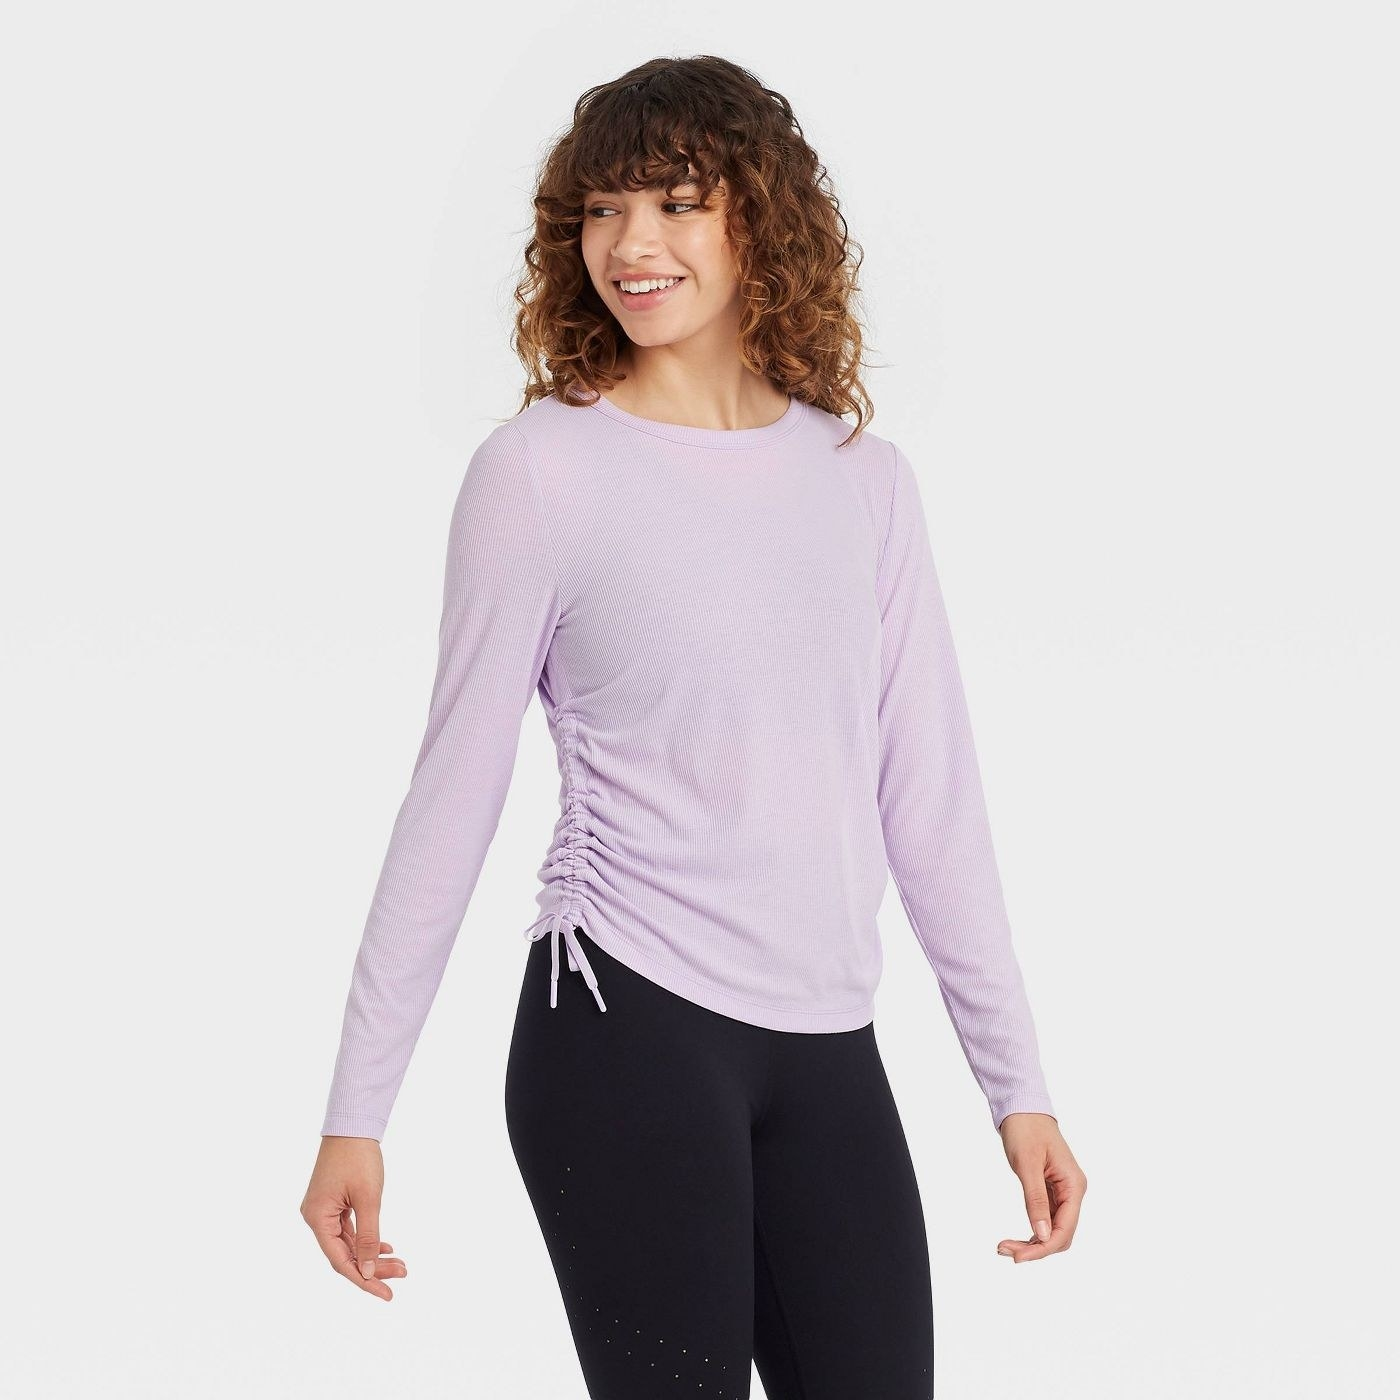 Model in long sleeve top with side cinch detail